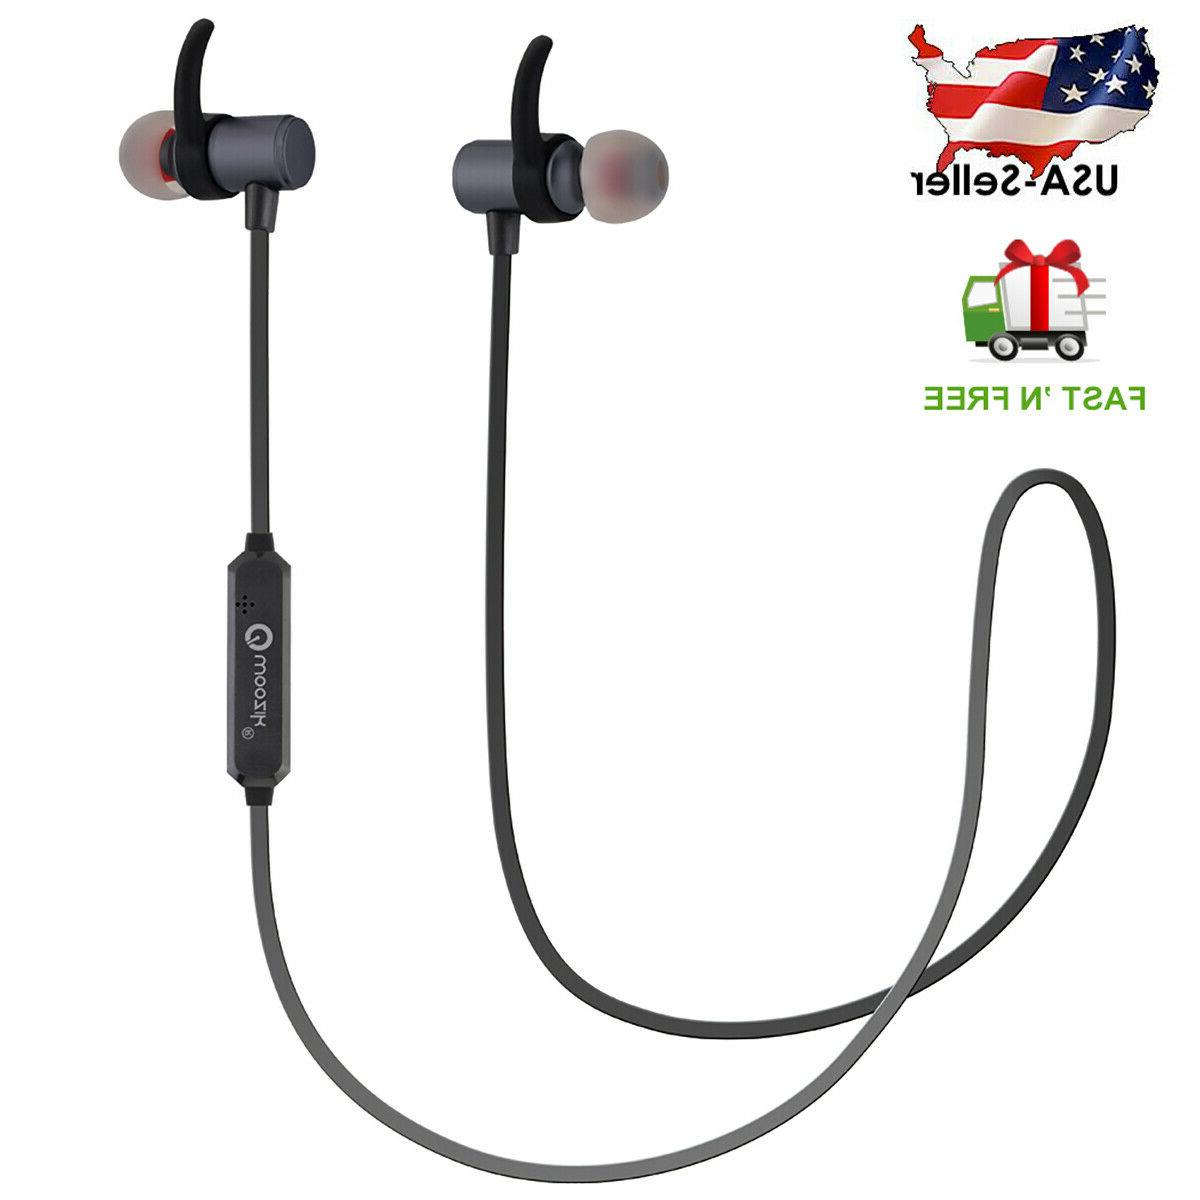 waterproof sport bluetooth headset wireless headphones in